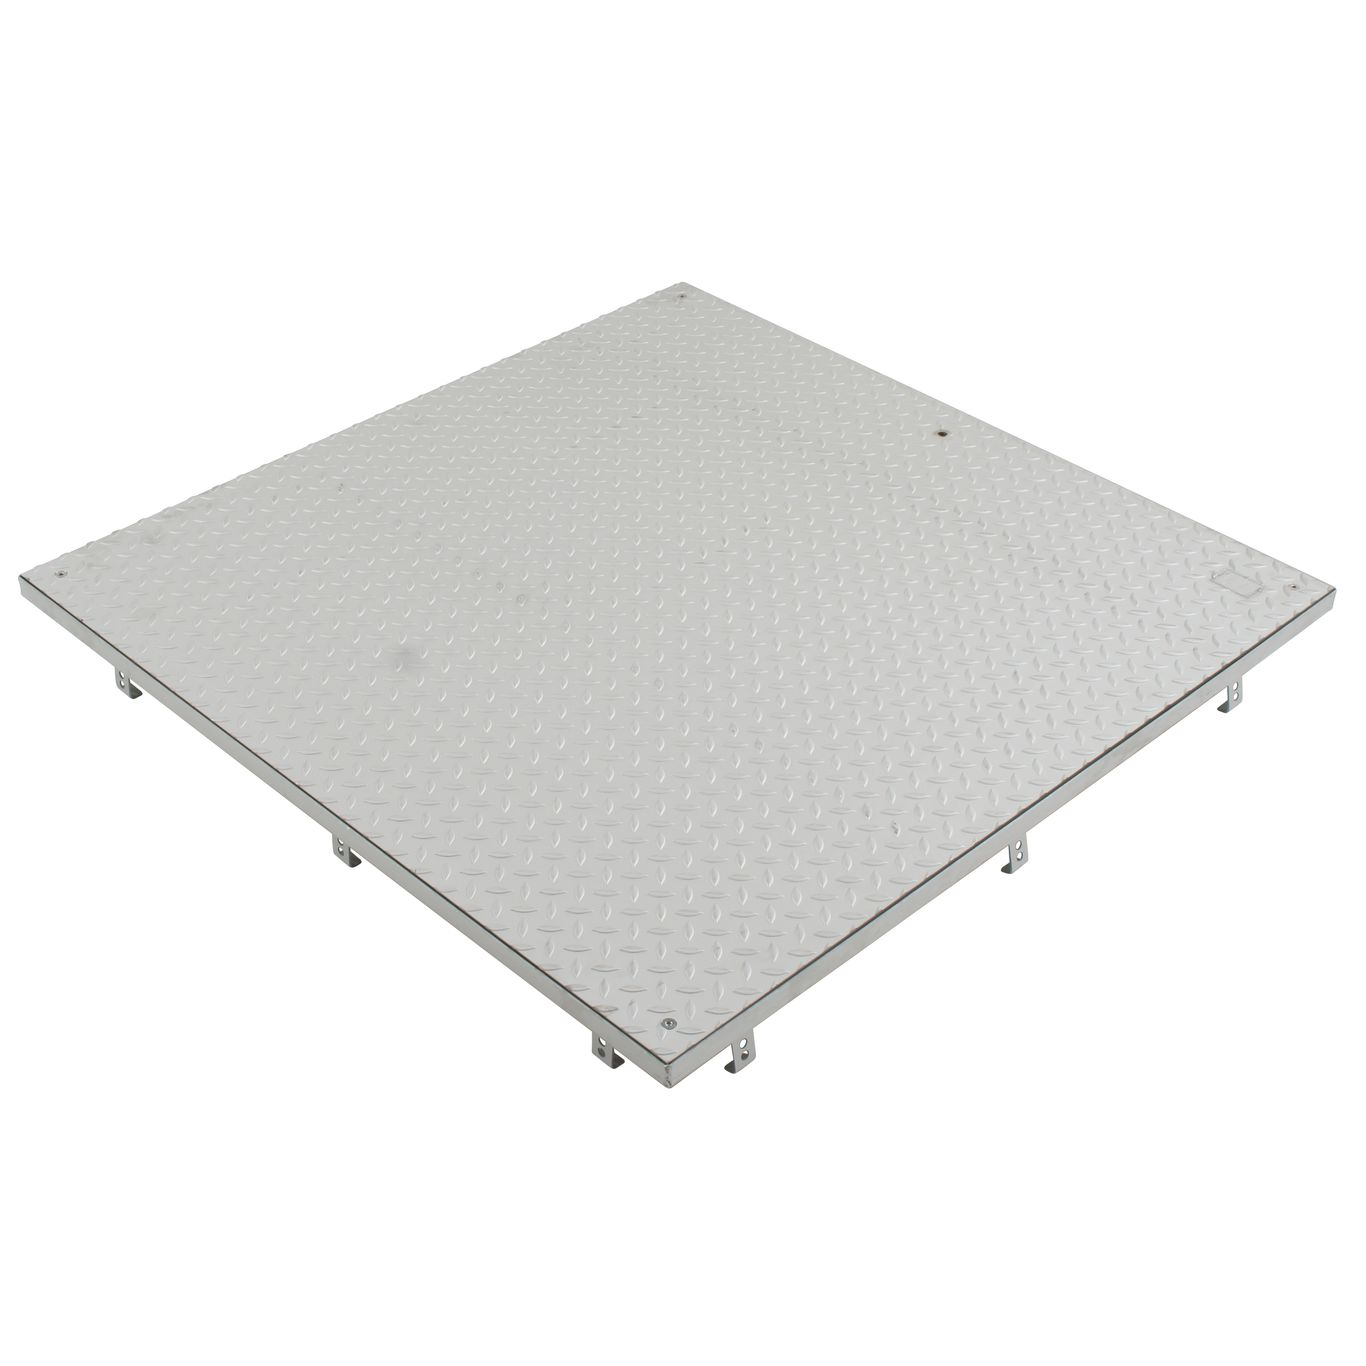 Access cover-Plate